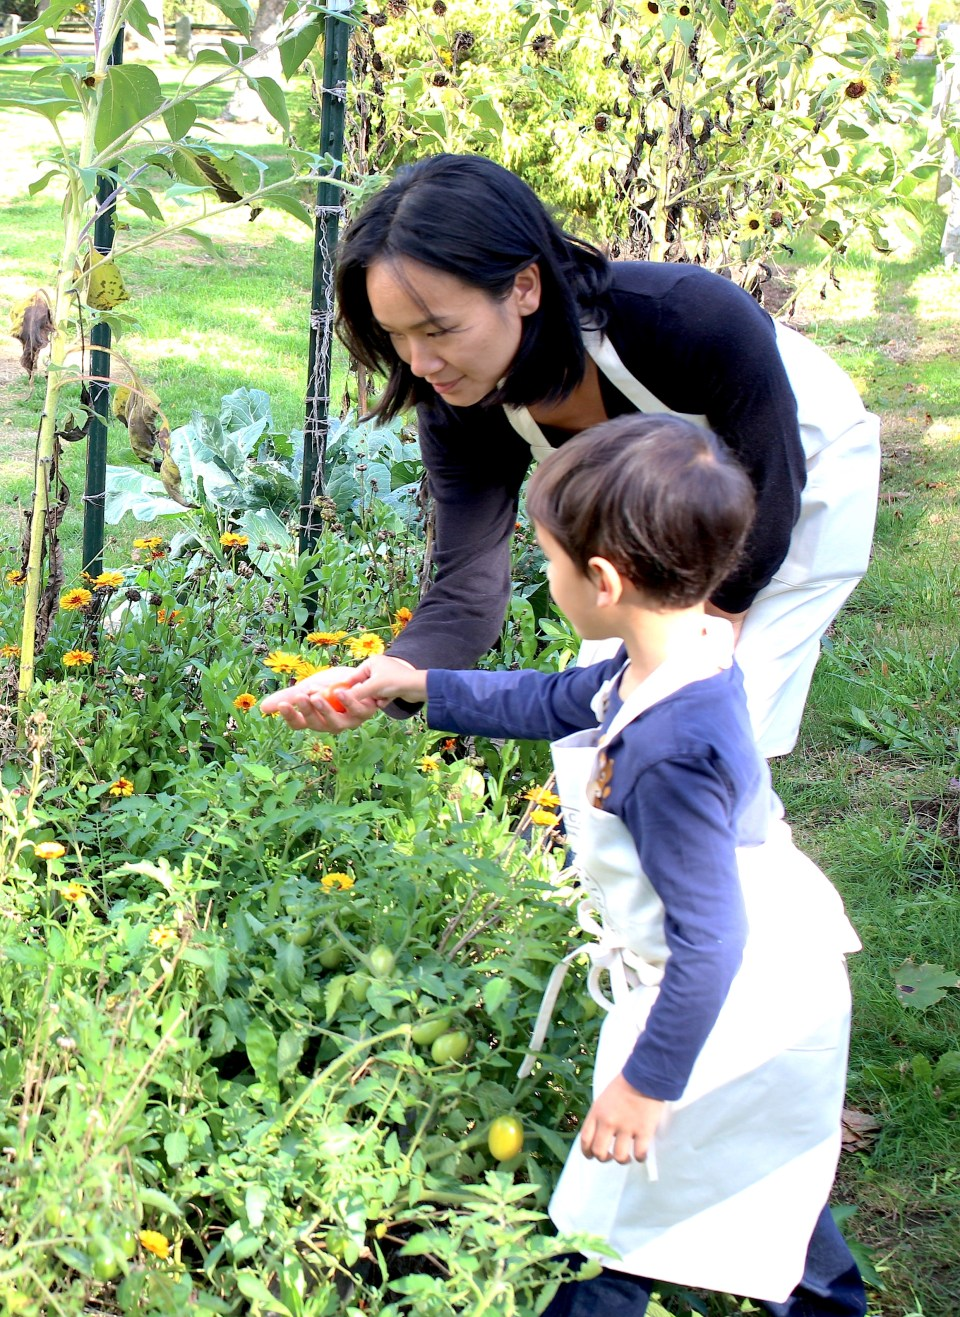 How To Care For Your Family Naturally As A Family Herbalist | Herbal Academy | There are many ways one can practice as an herbalist—one very popular way is being a Family Herbalist! Learn all about it in this post!